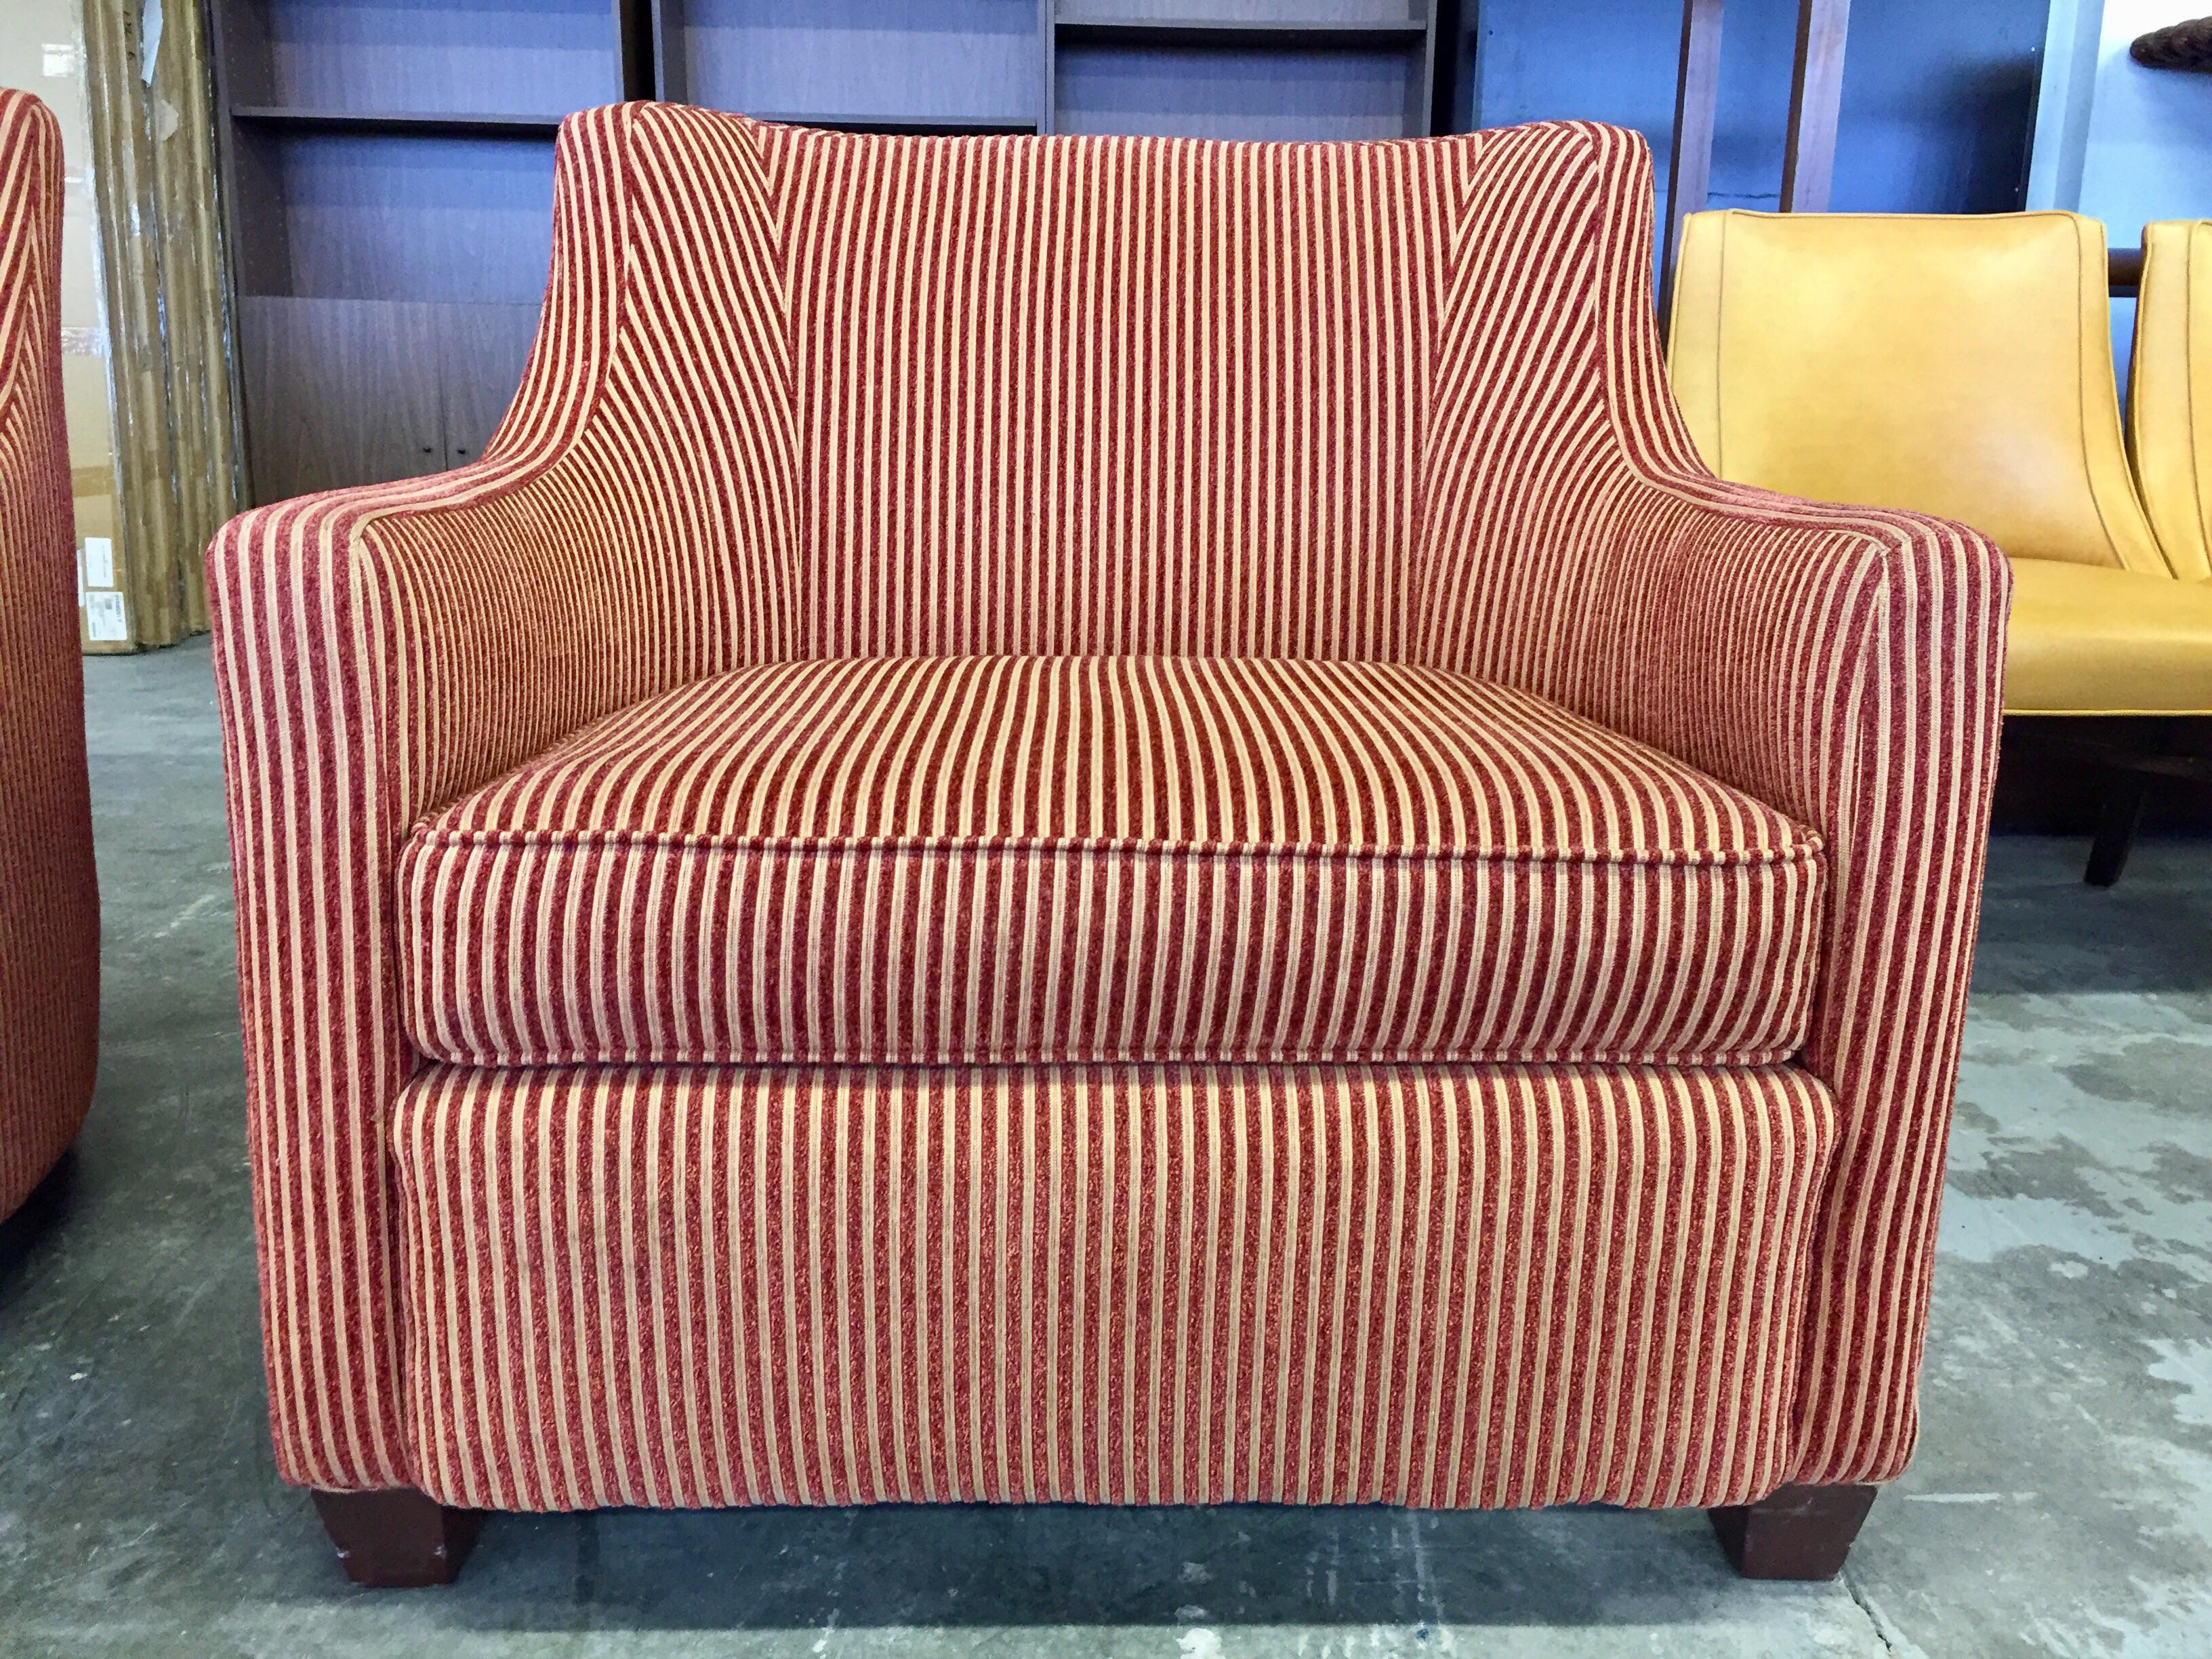 Charter Furniture Co. Wale Red U0026 Gold Corduroy Armchair   Image 2 ...